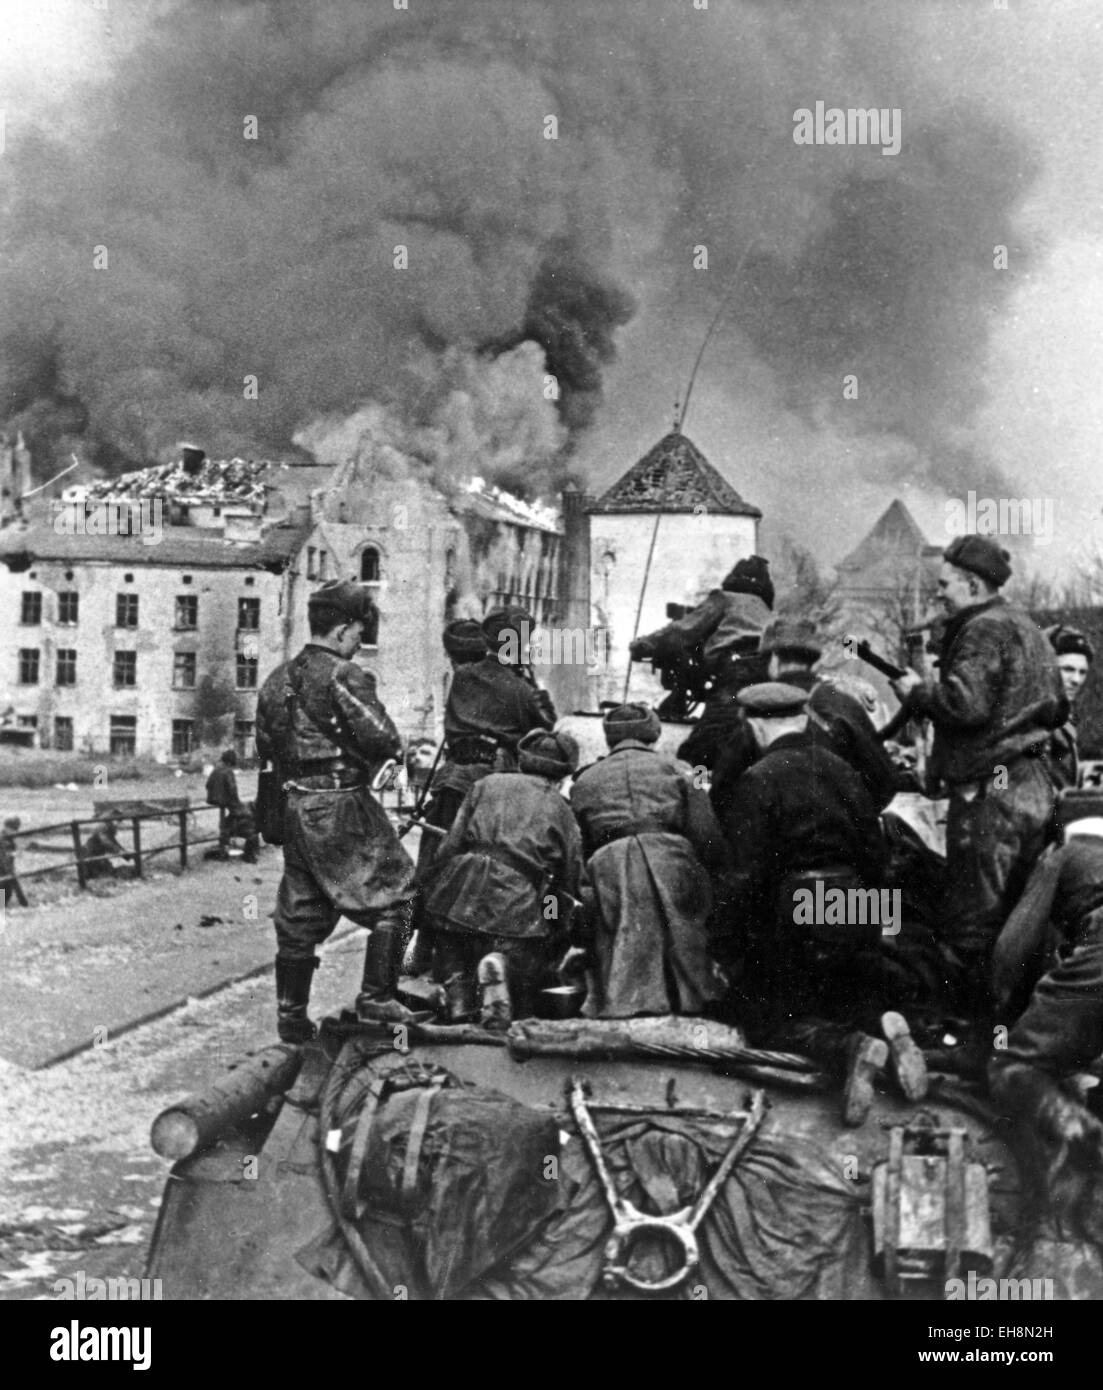 SOVIET TANK in the suburbs of Danzig, Poland,  in March 1945 - Stock Image